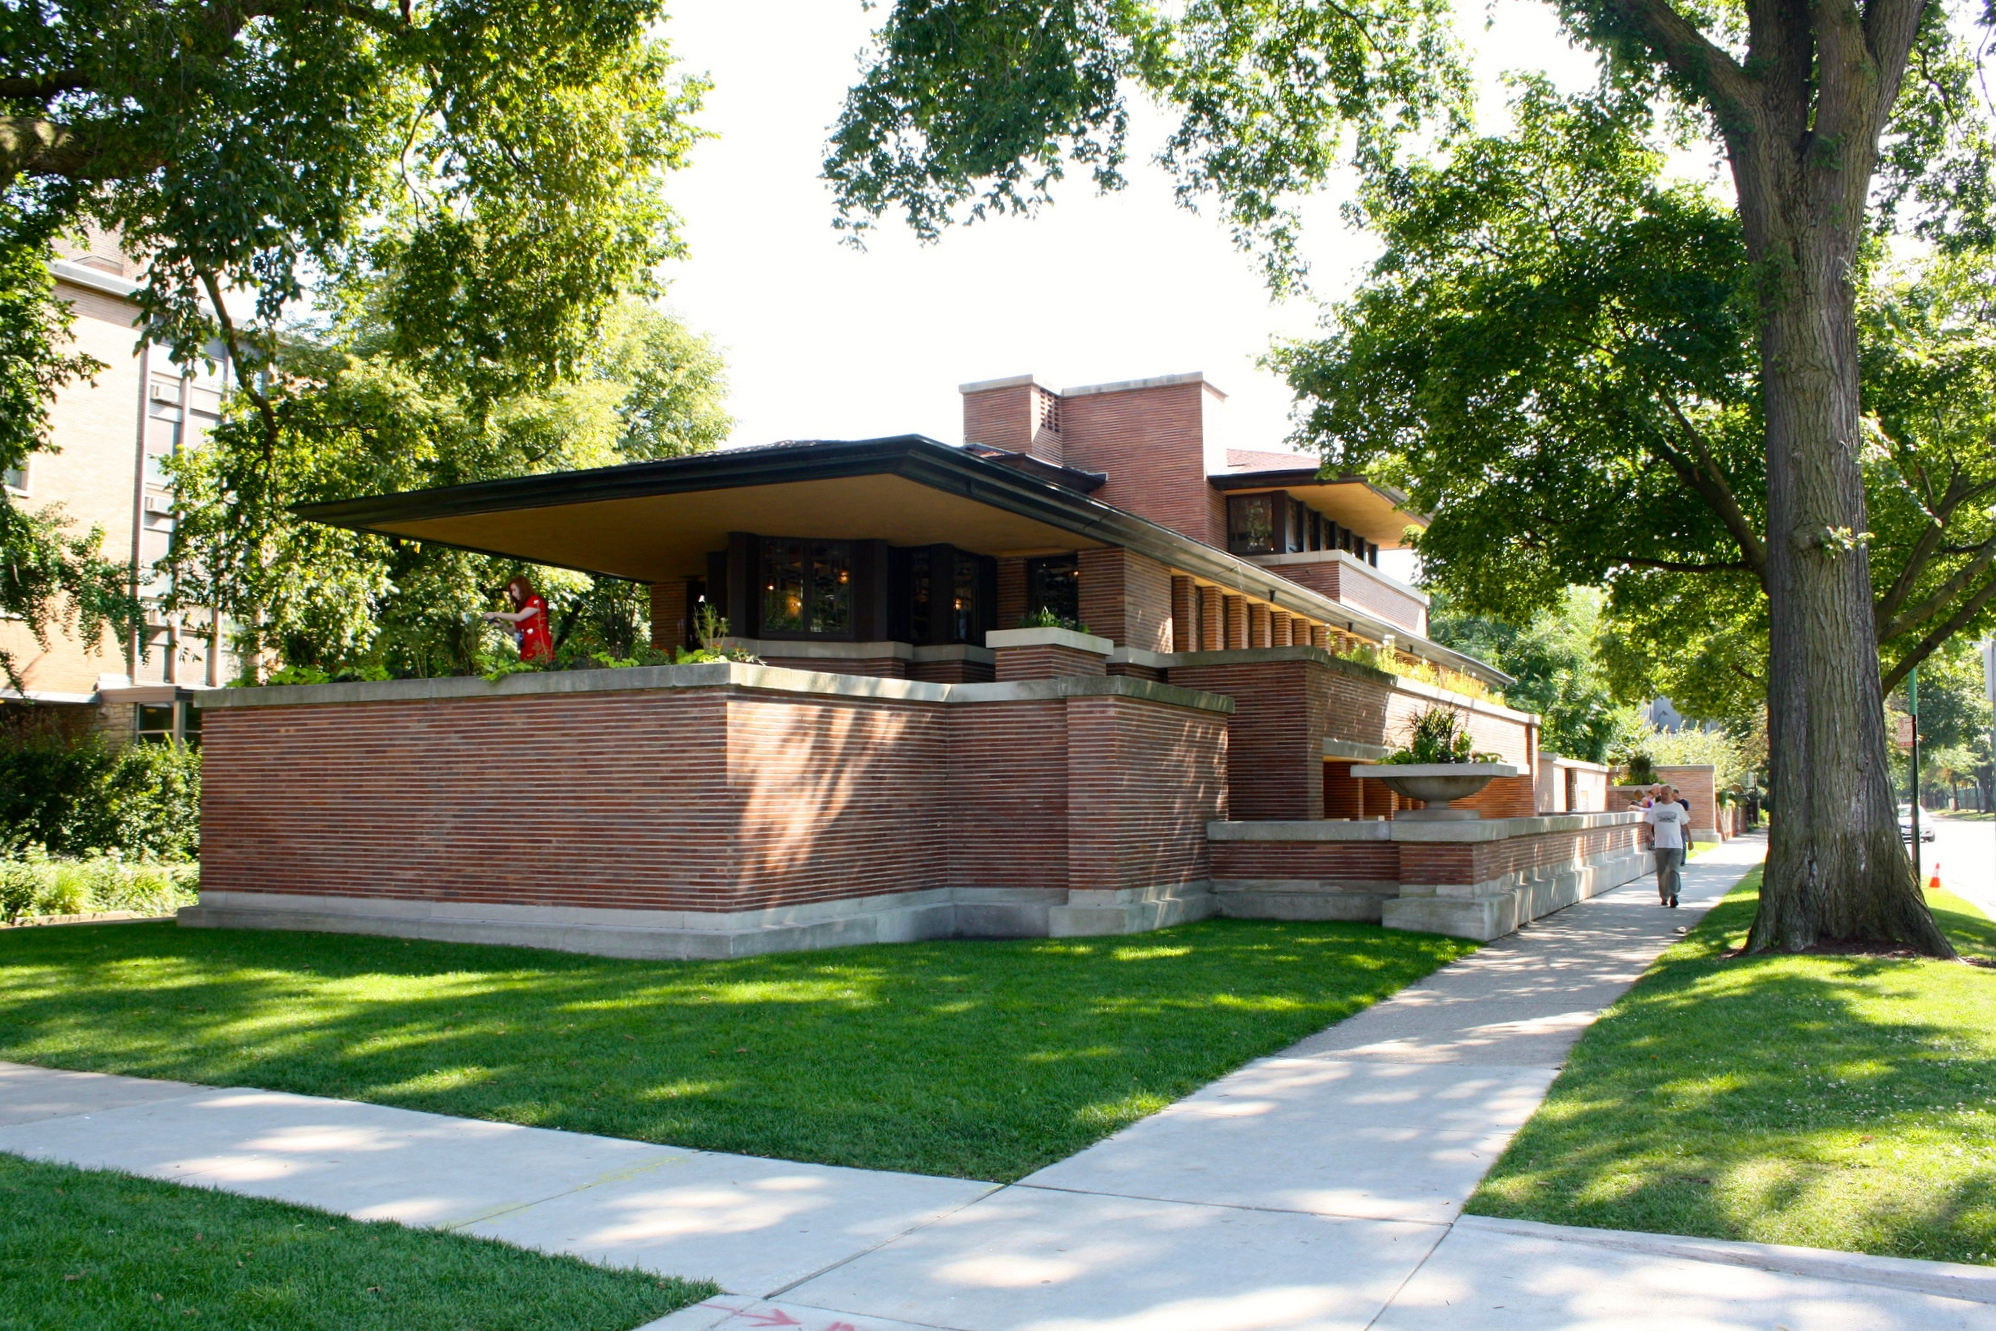 Happy hours returning once again to frank lloyd wrights iconic robie house